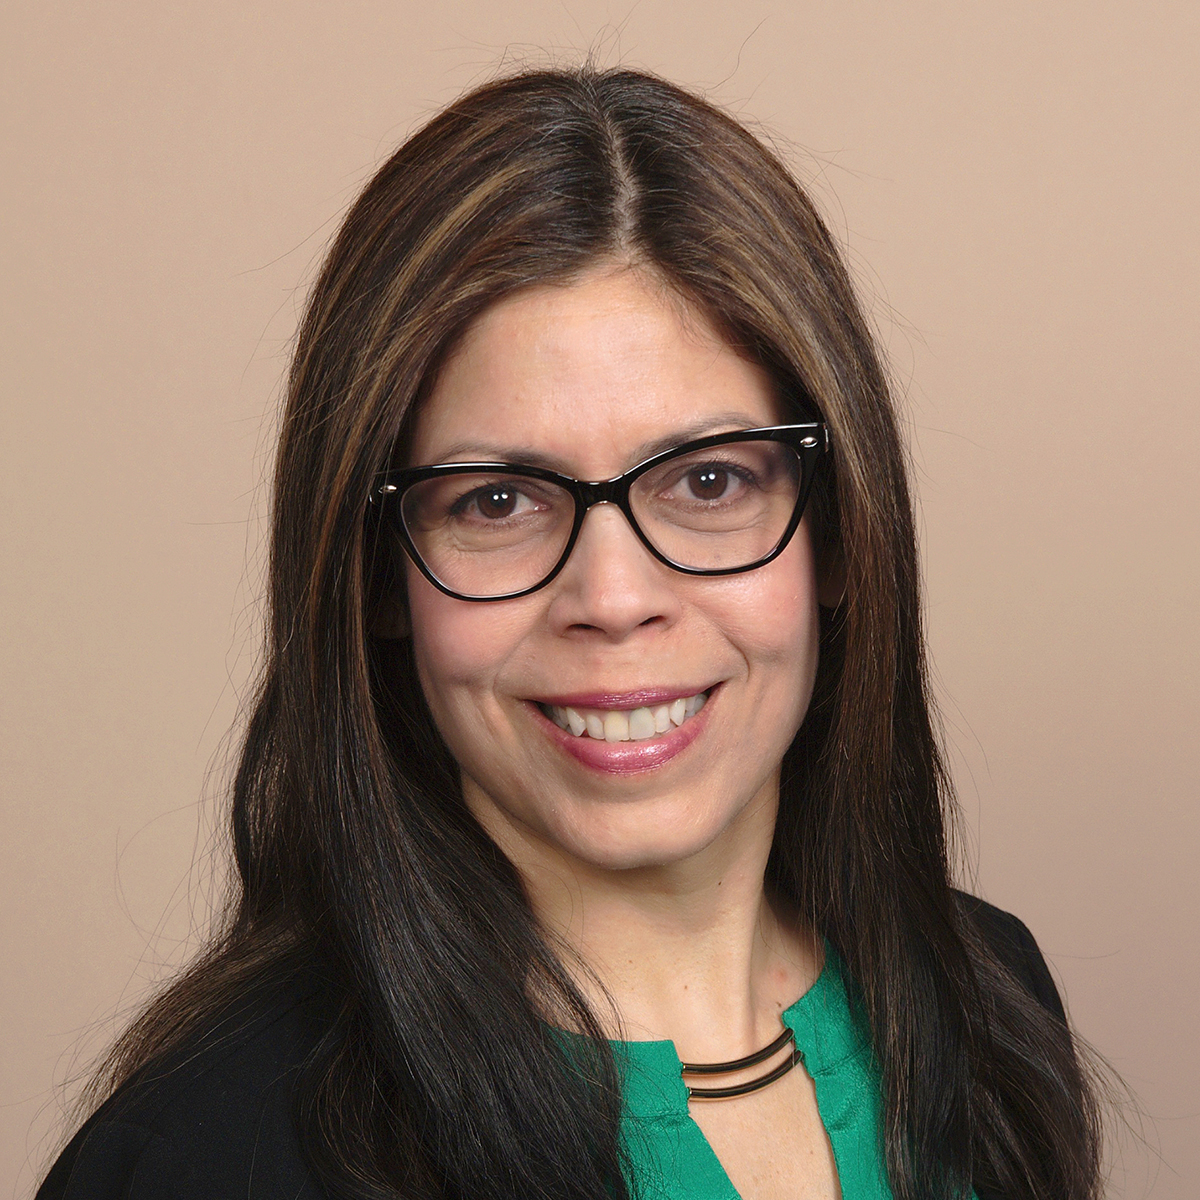 Monica Torres, Senior EHS&S Technical Manager; Baxter Healthcare Corp. biography